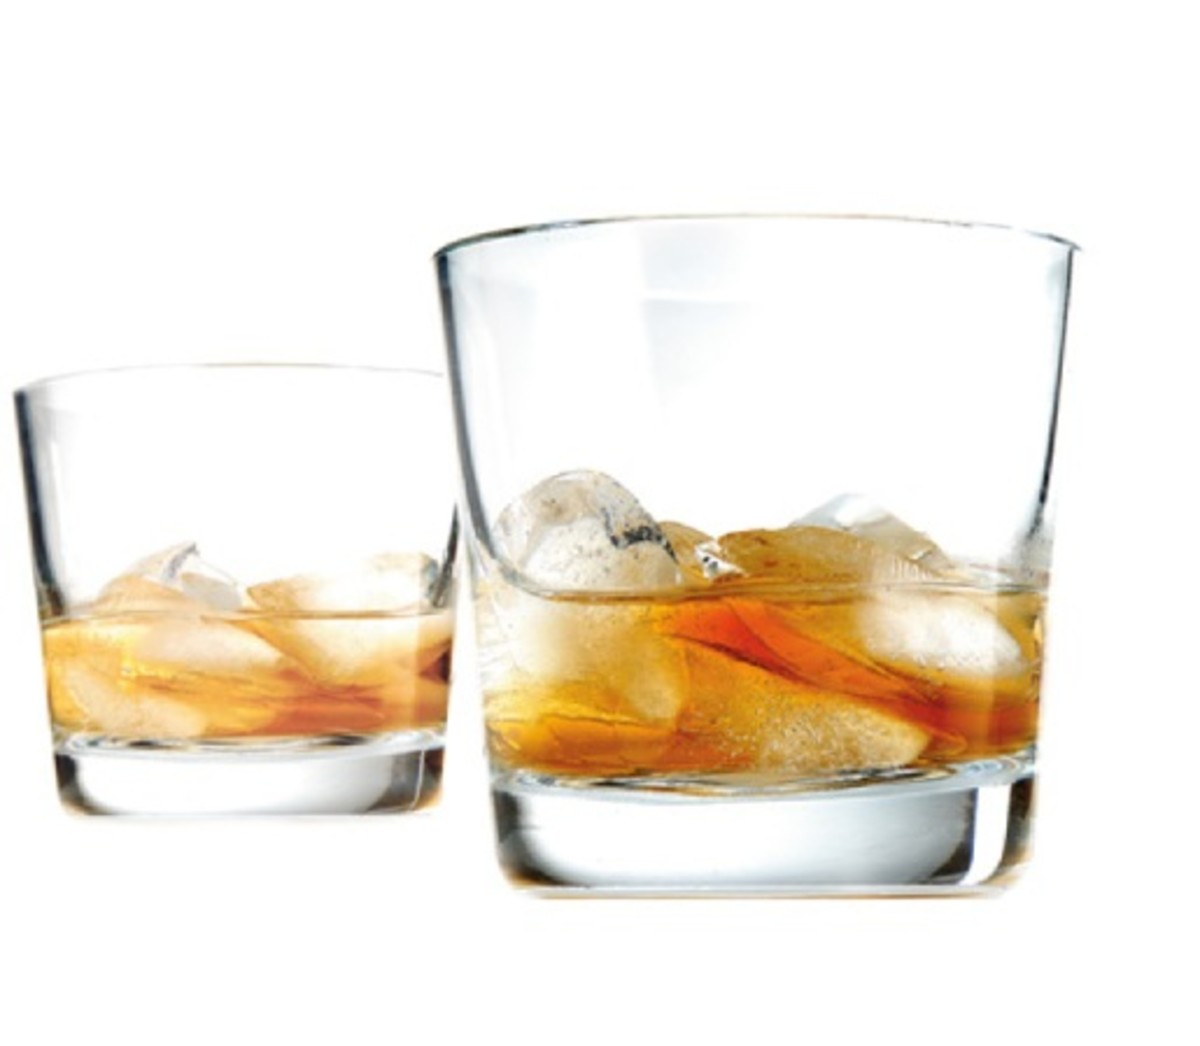 Can Whisky Help With An Upset Sick Stomach?